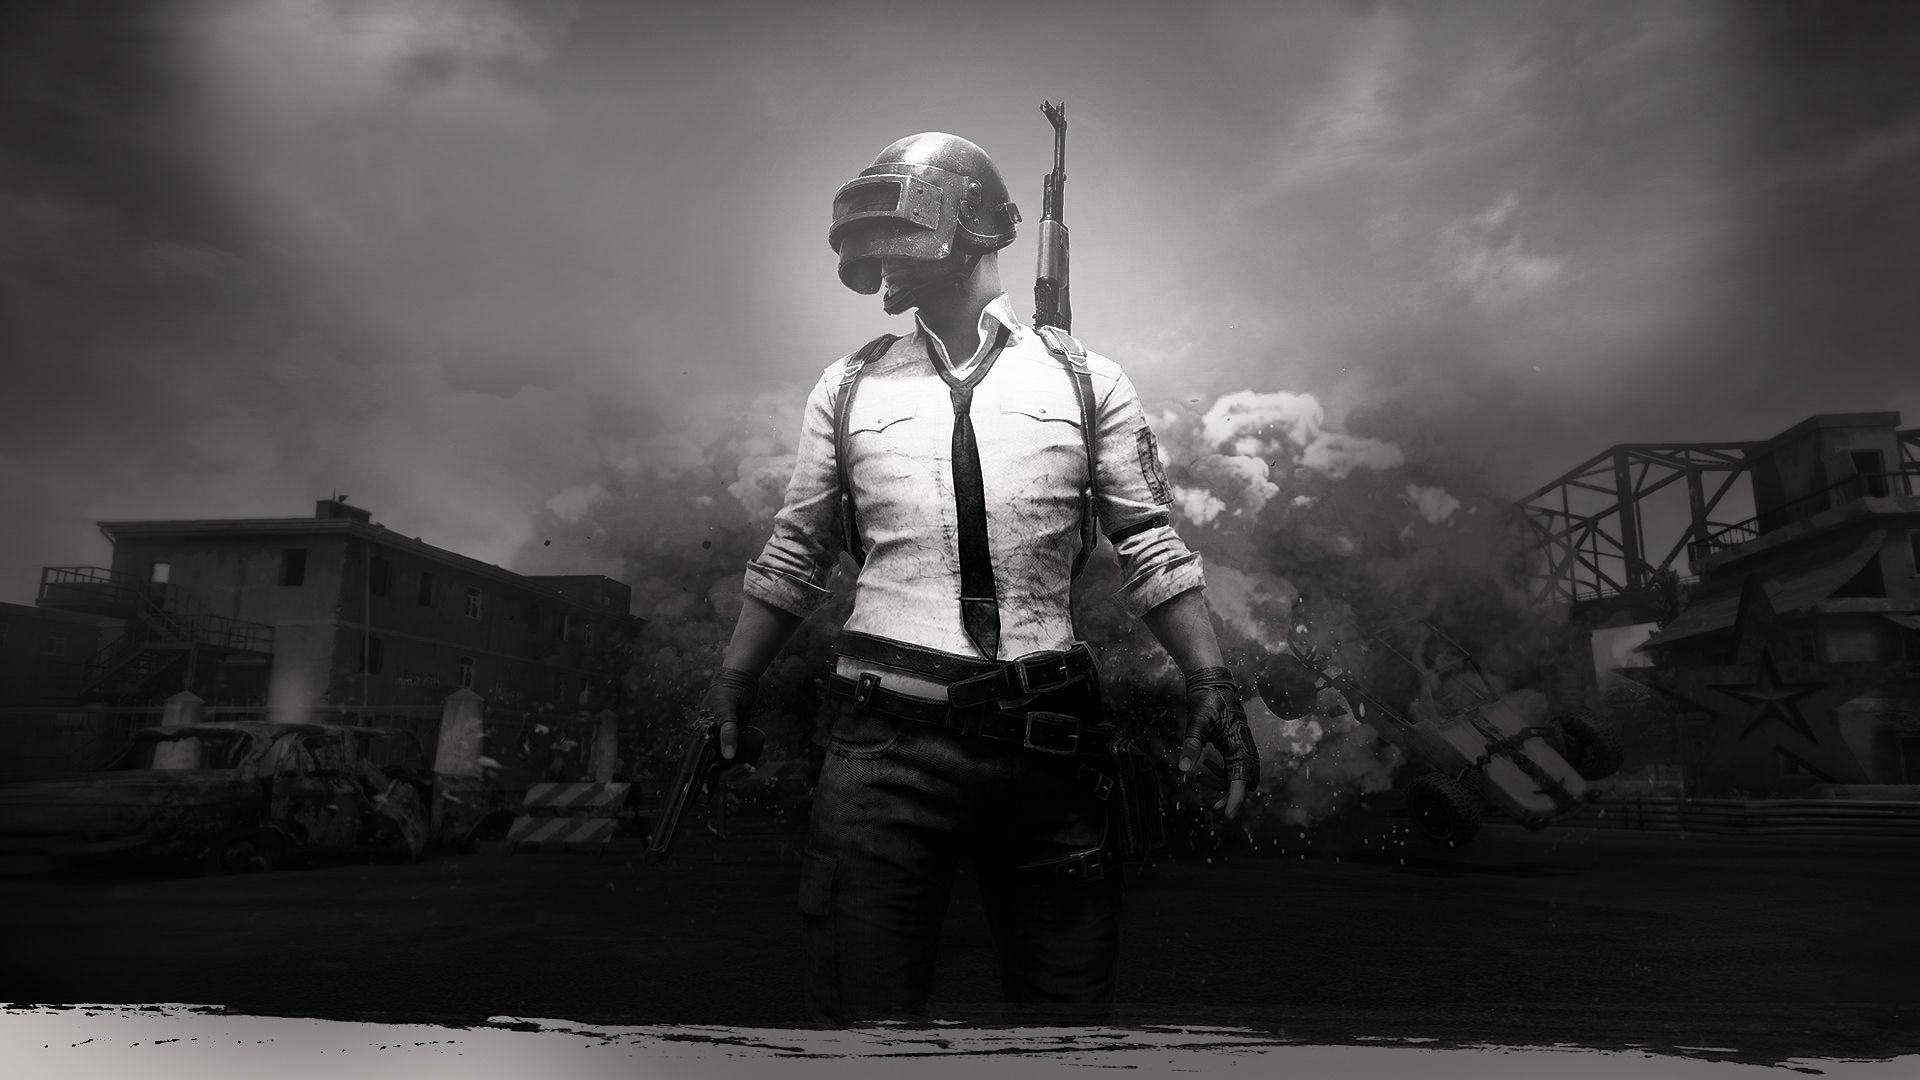 Pubg Black And White Wallpapers Top Free Pubg Black And White Backgrounds Wallpaperaccess